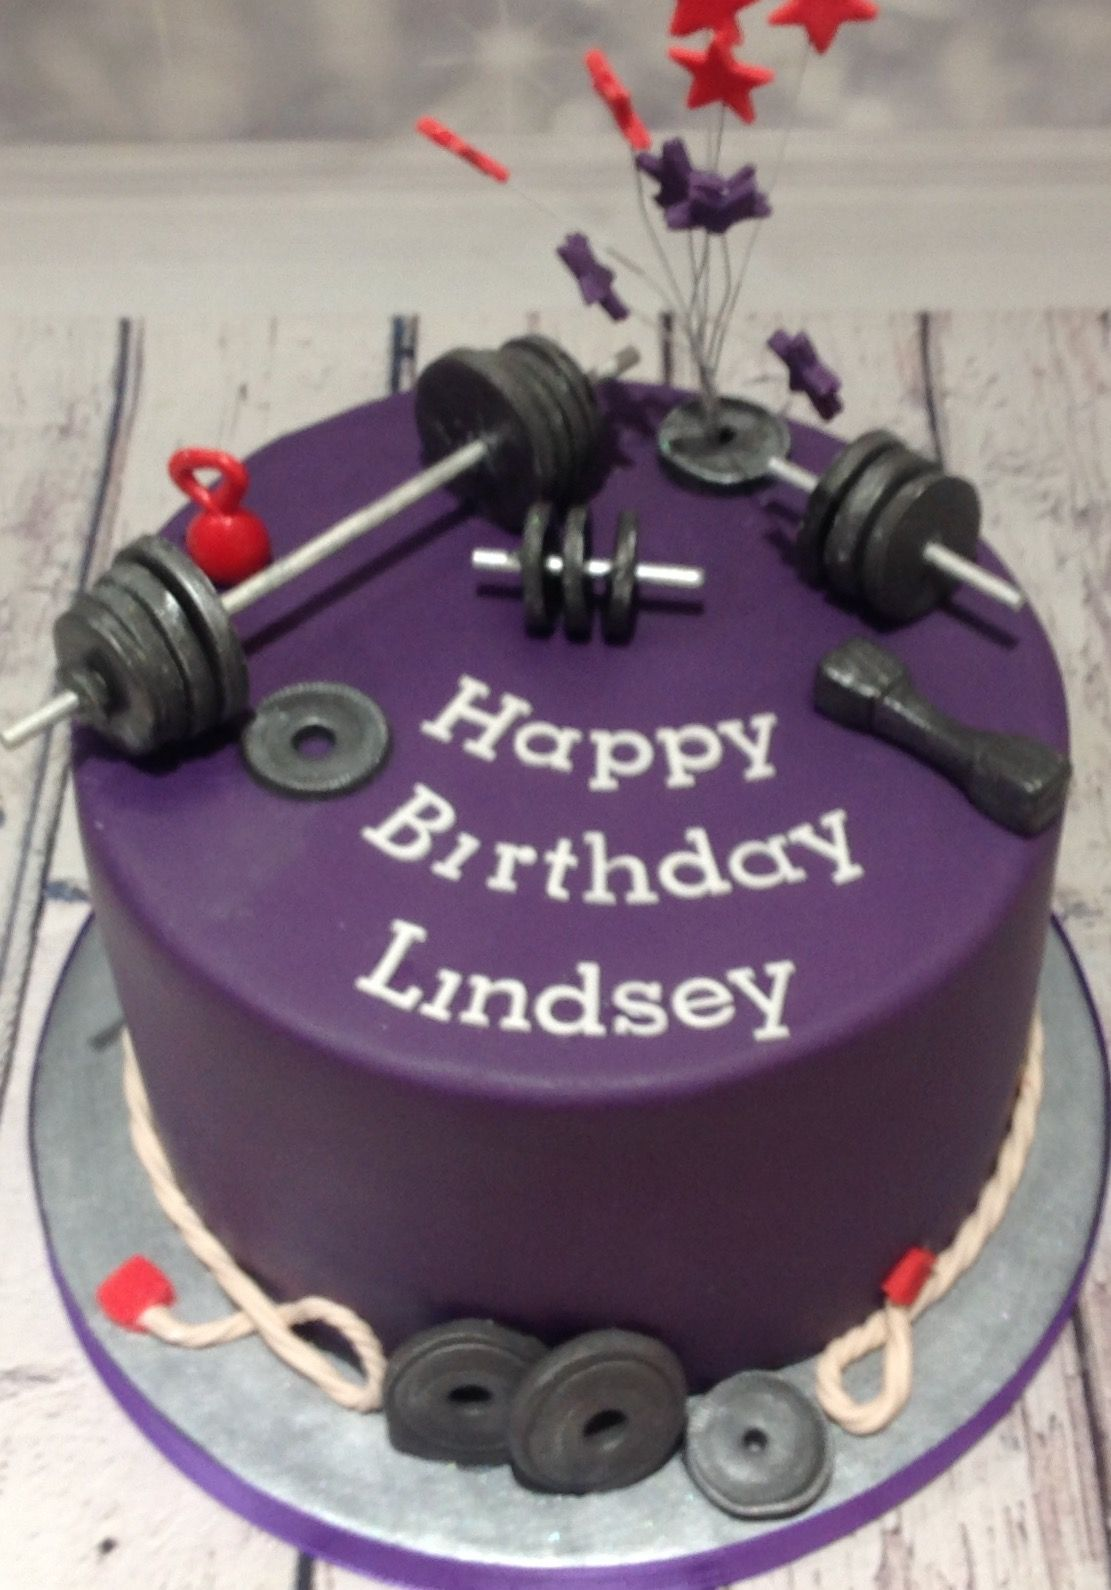 Weightlifting Cake 1 With Images Fitness Cake Cake Cake